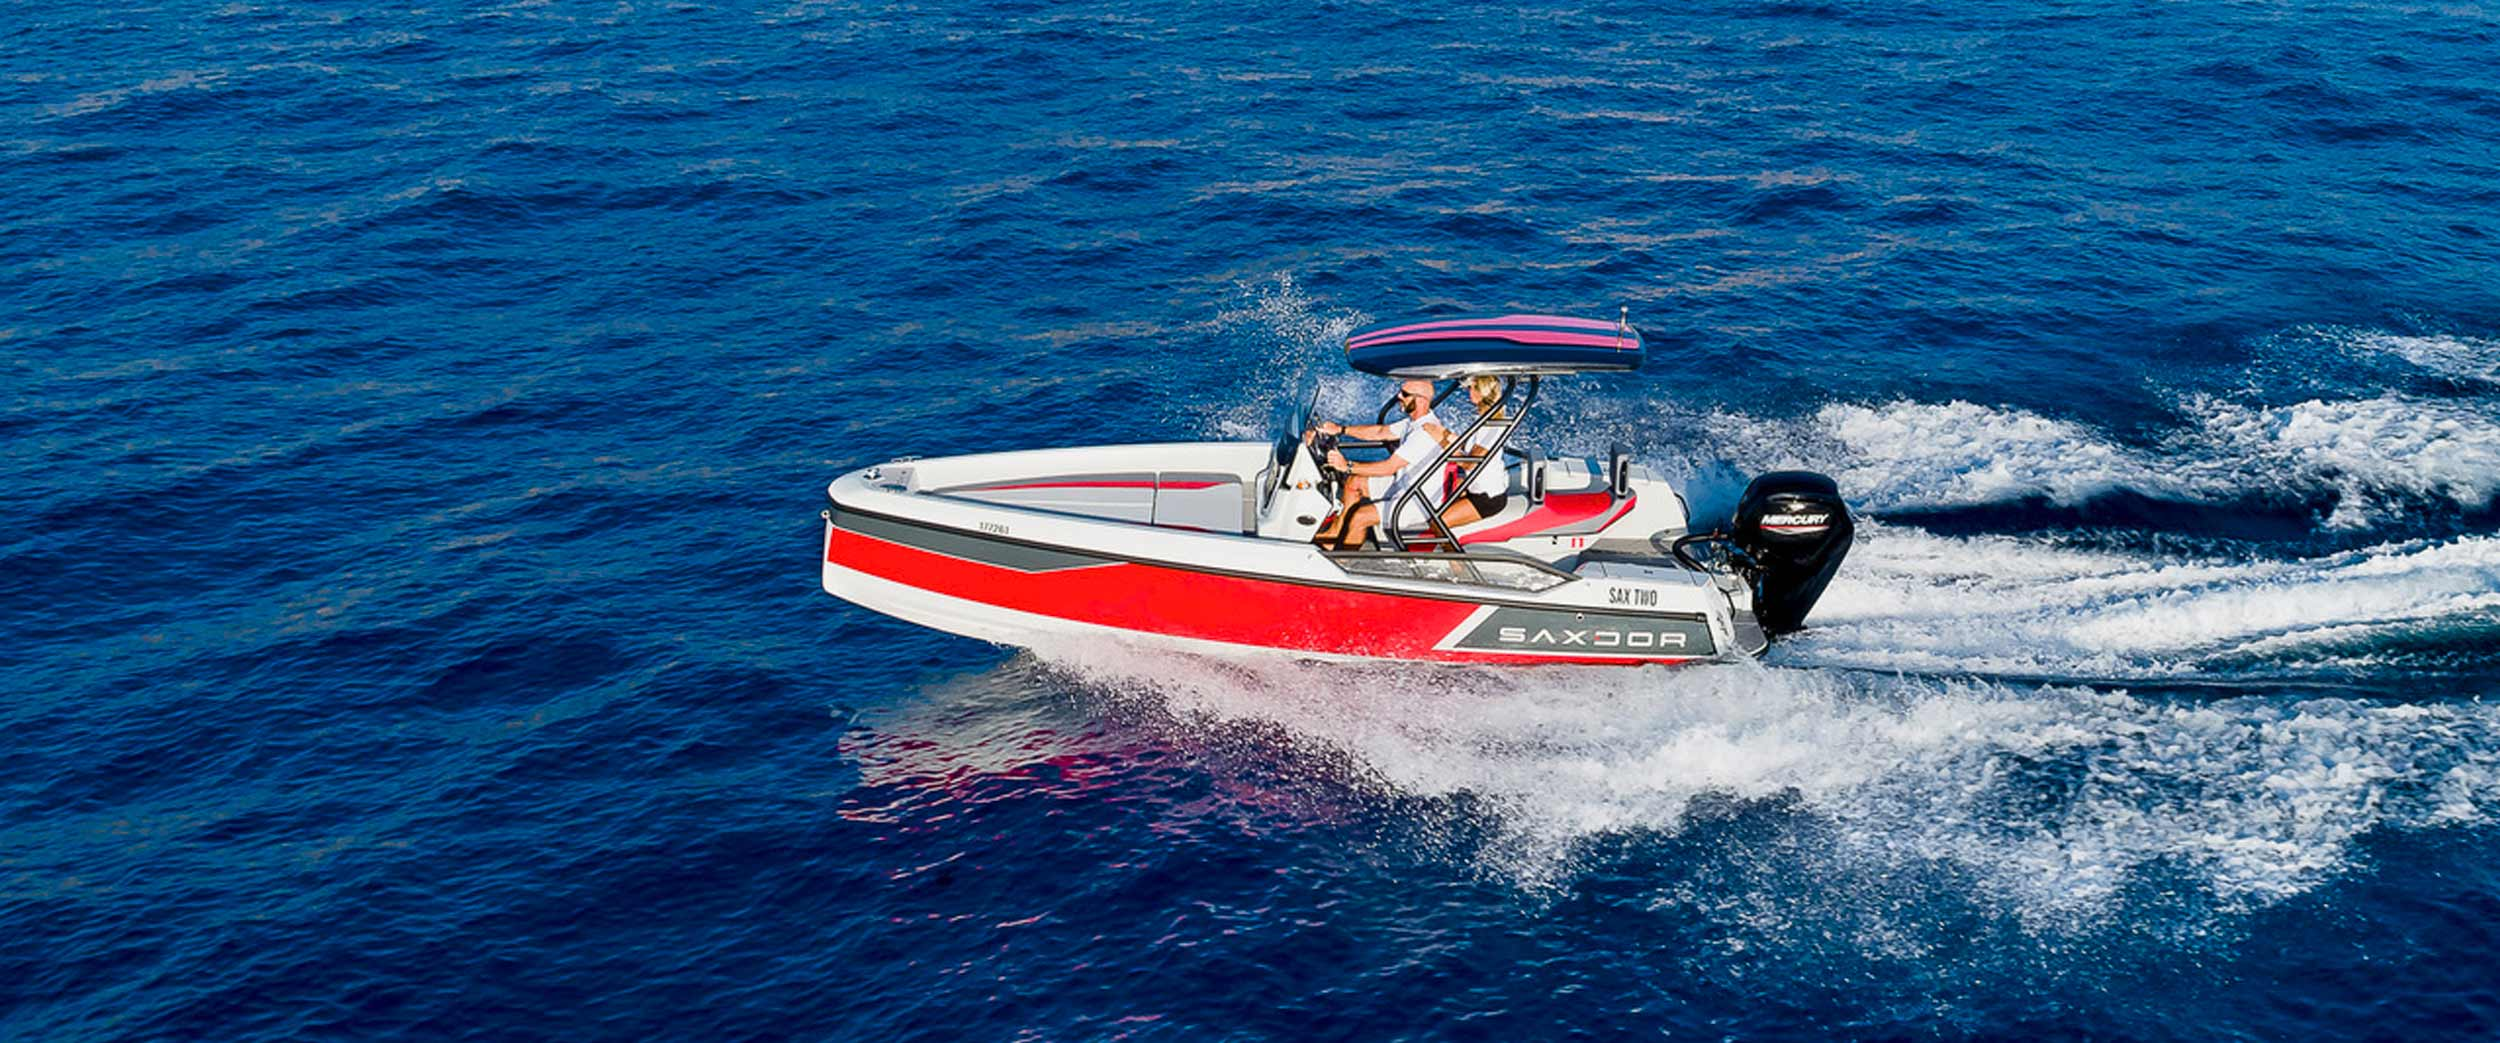 Saxdor Yachts -  Front page slide 4 – S200 powerboat